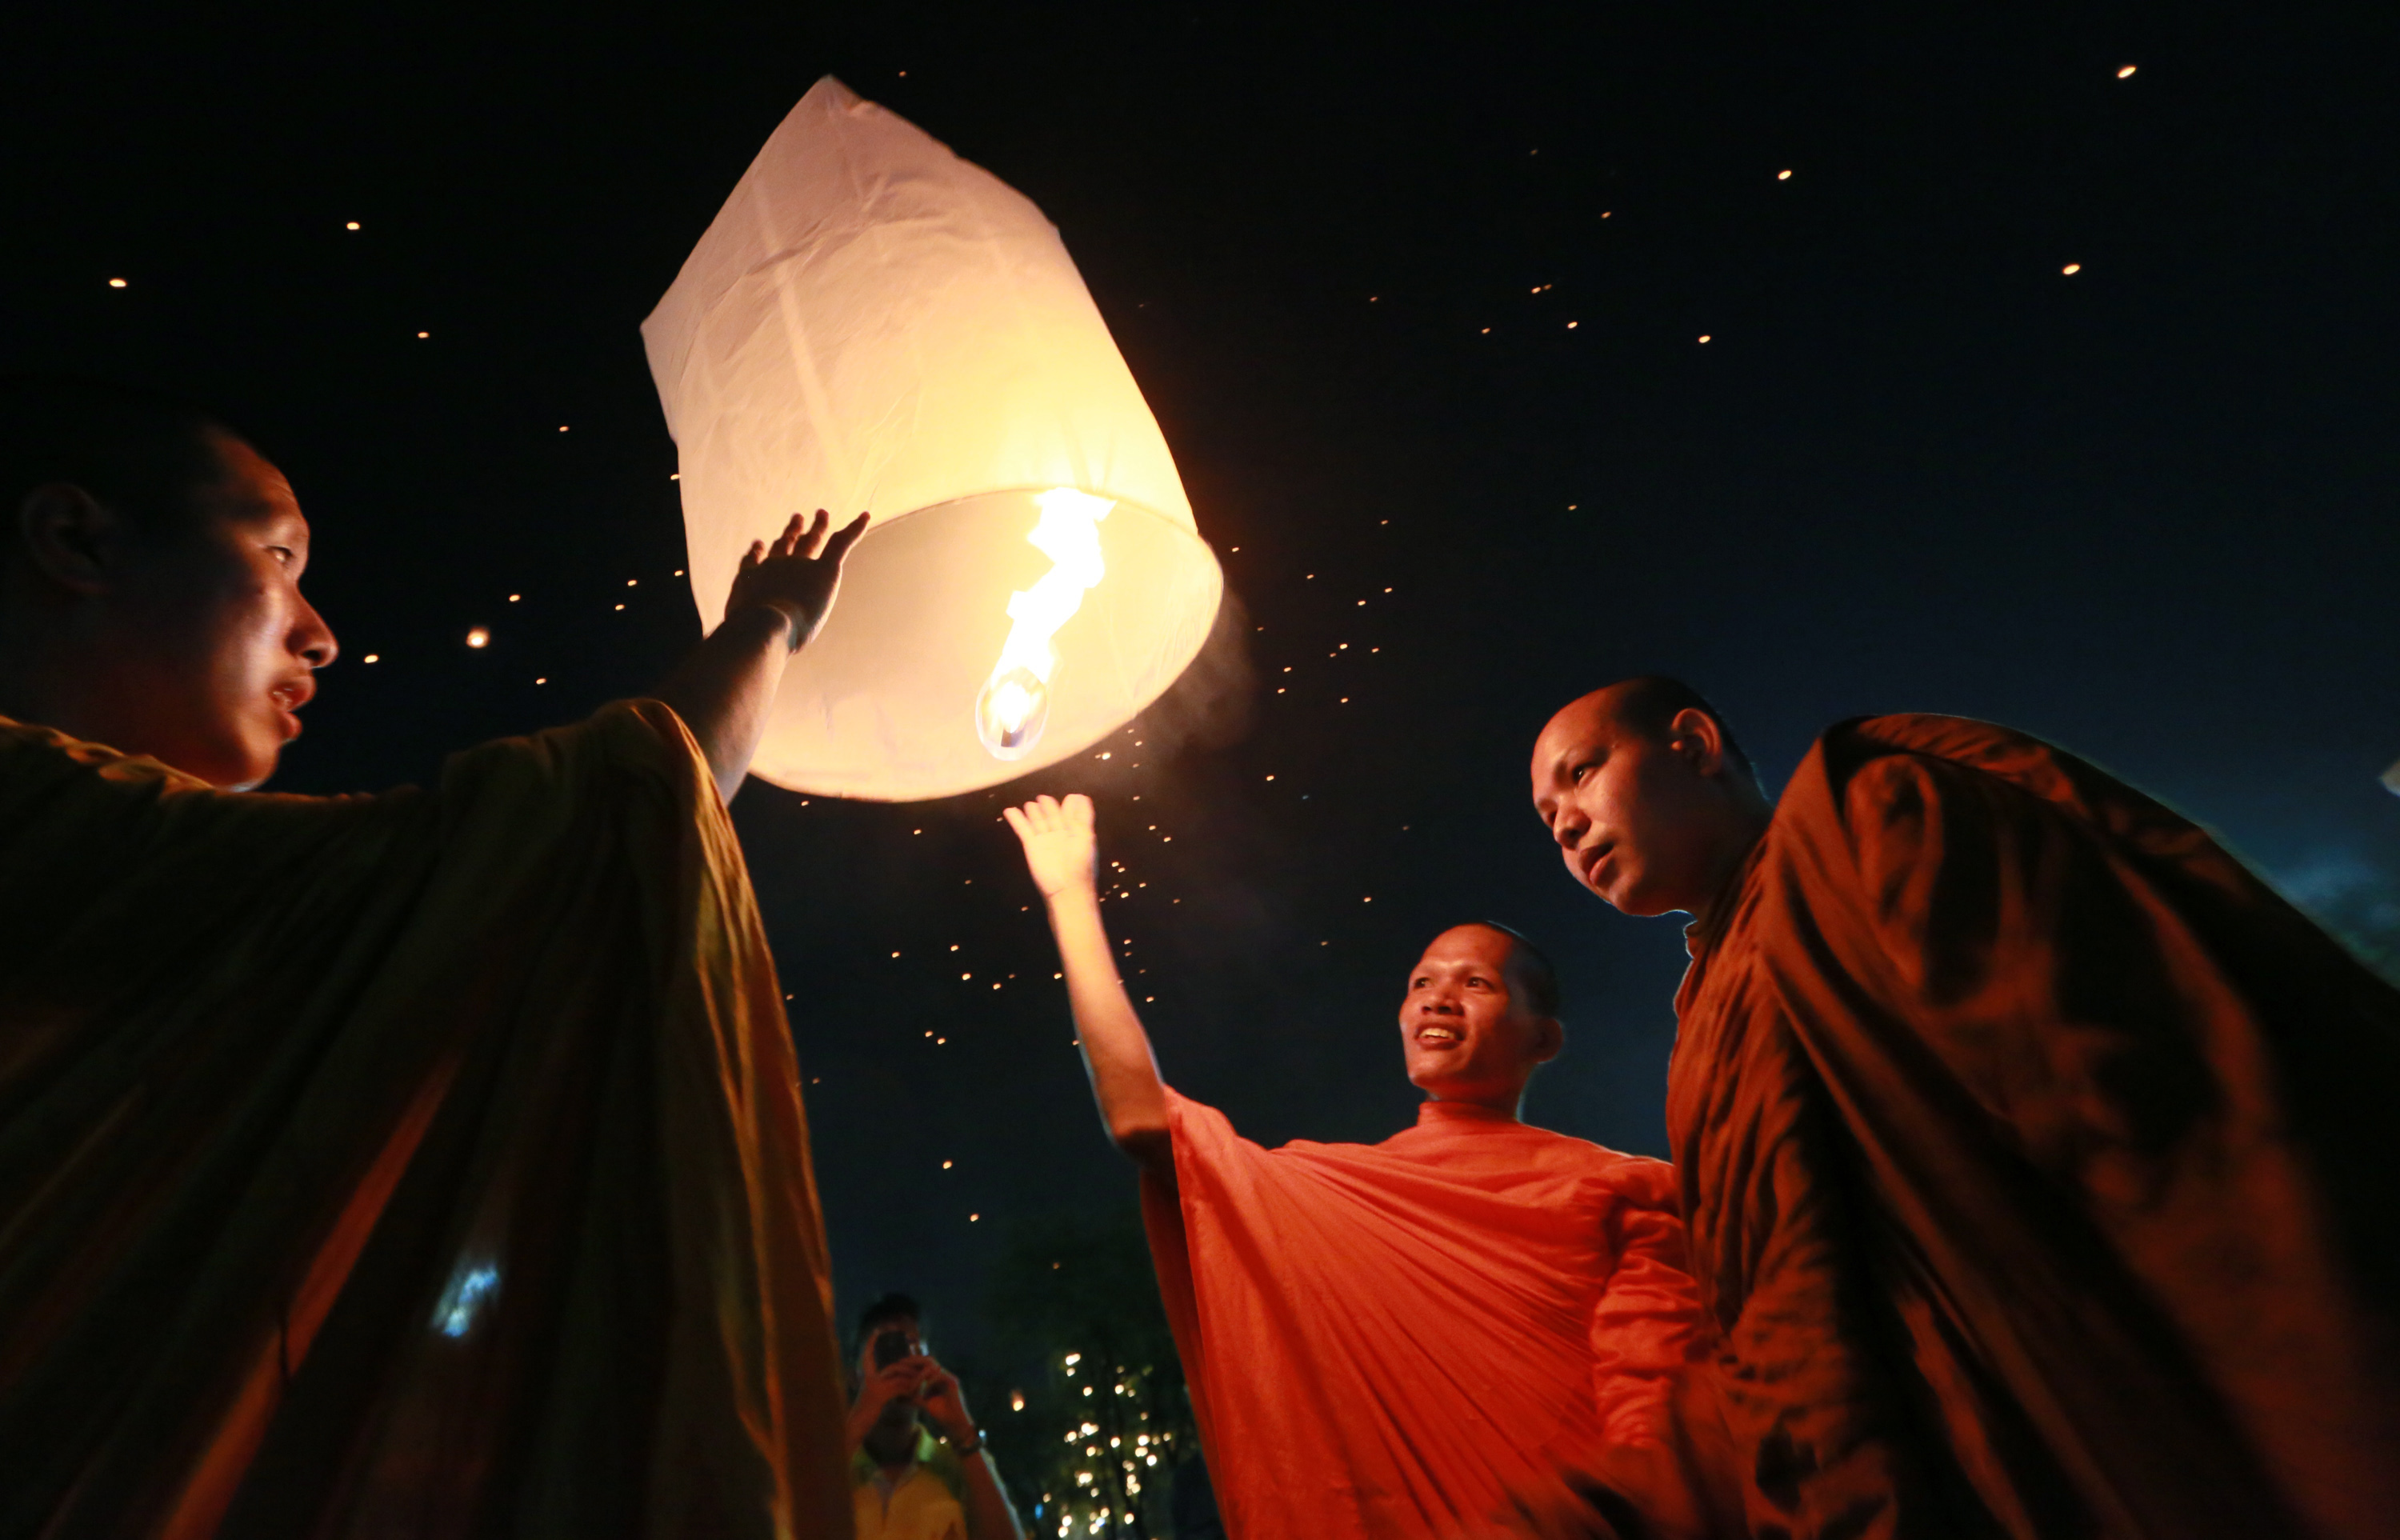 Thailand S Fiery Sky Lanterns Are Beautiful But Incredibly